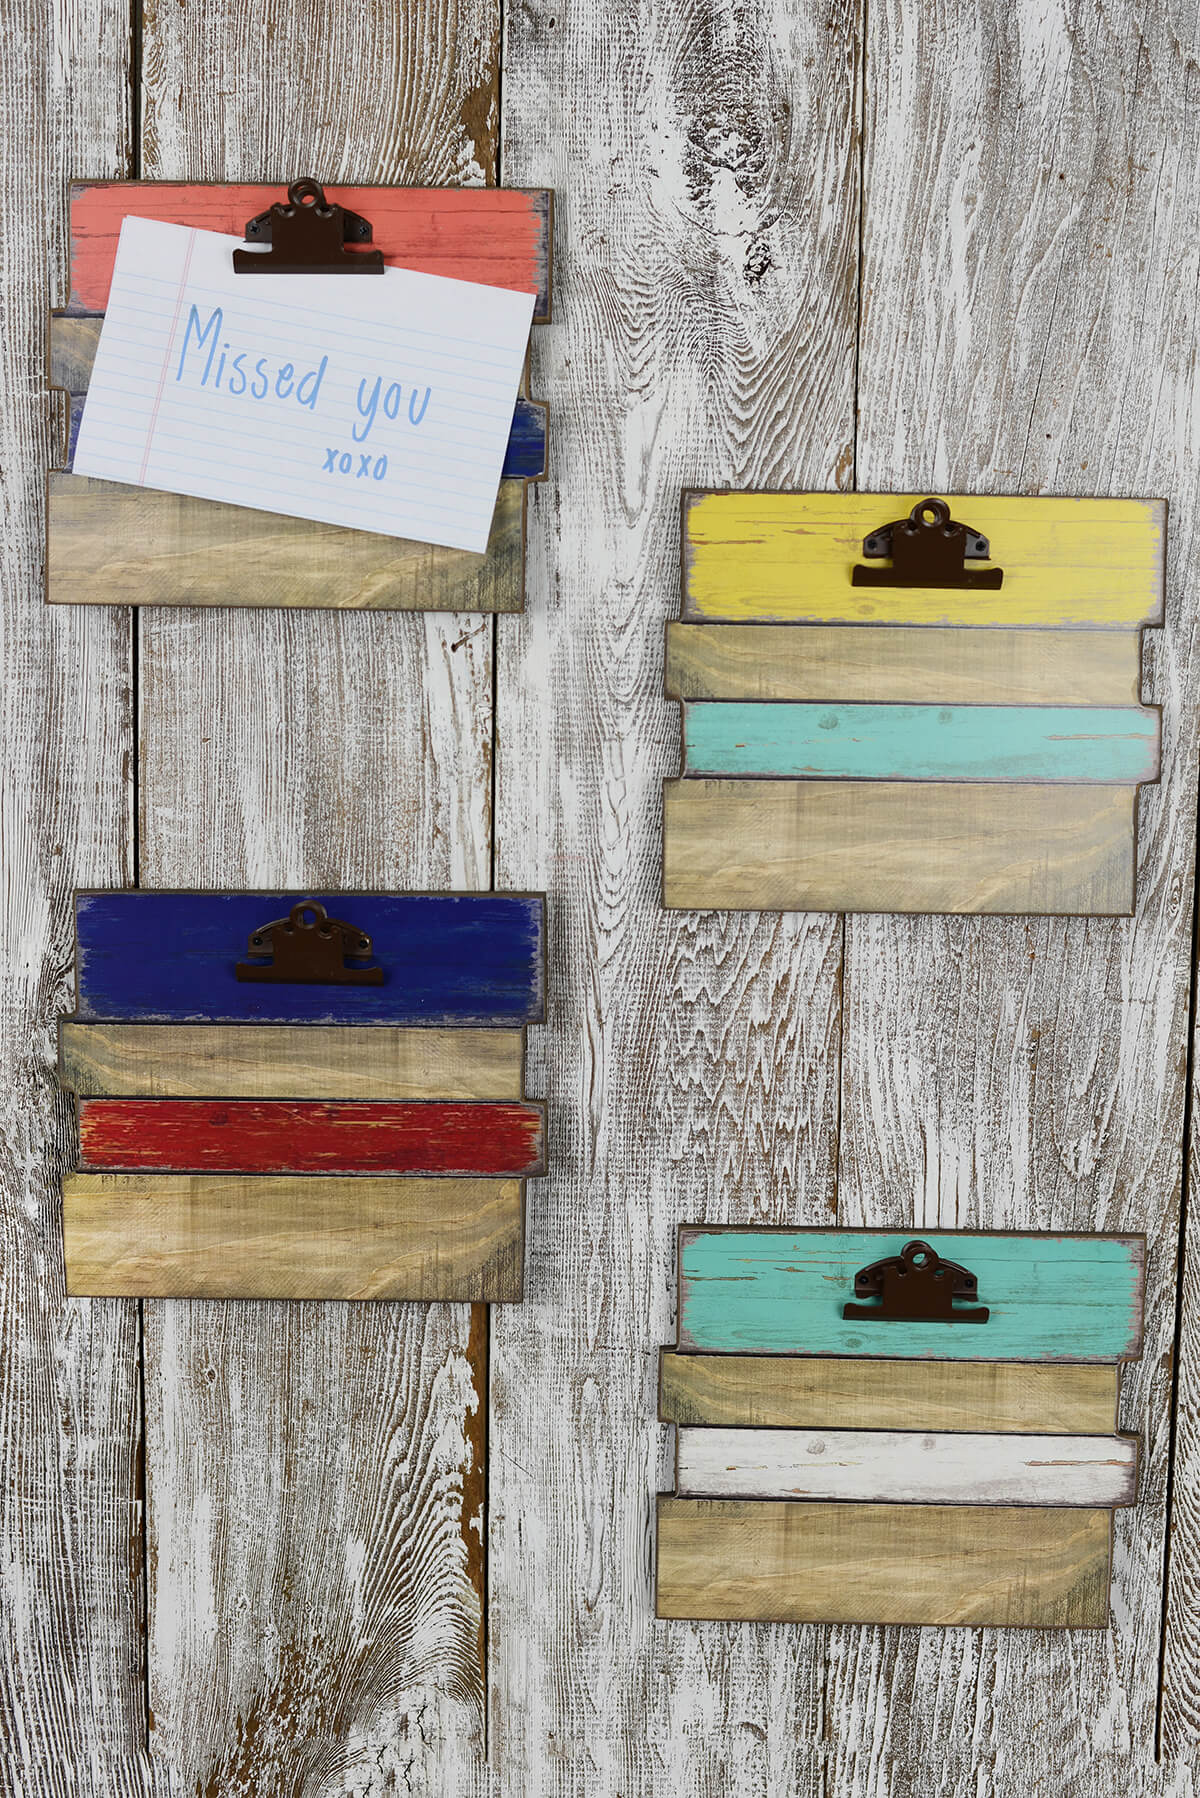 Wood plank clipboards in